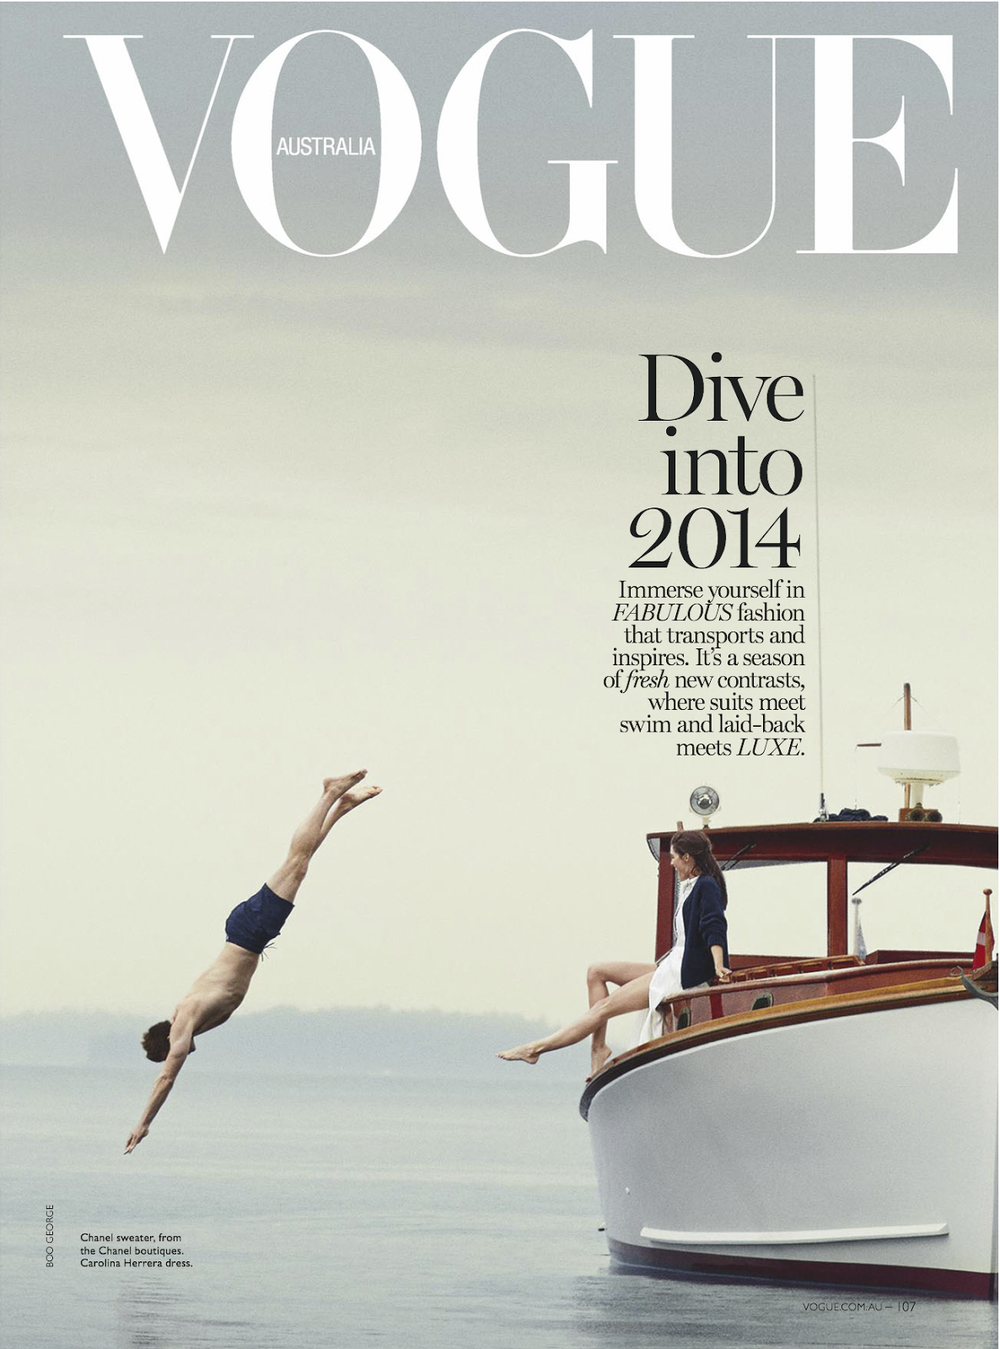 Vogue_Australia_2014_01.bak (dragged) 1.png